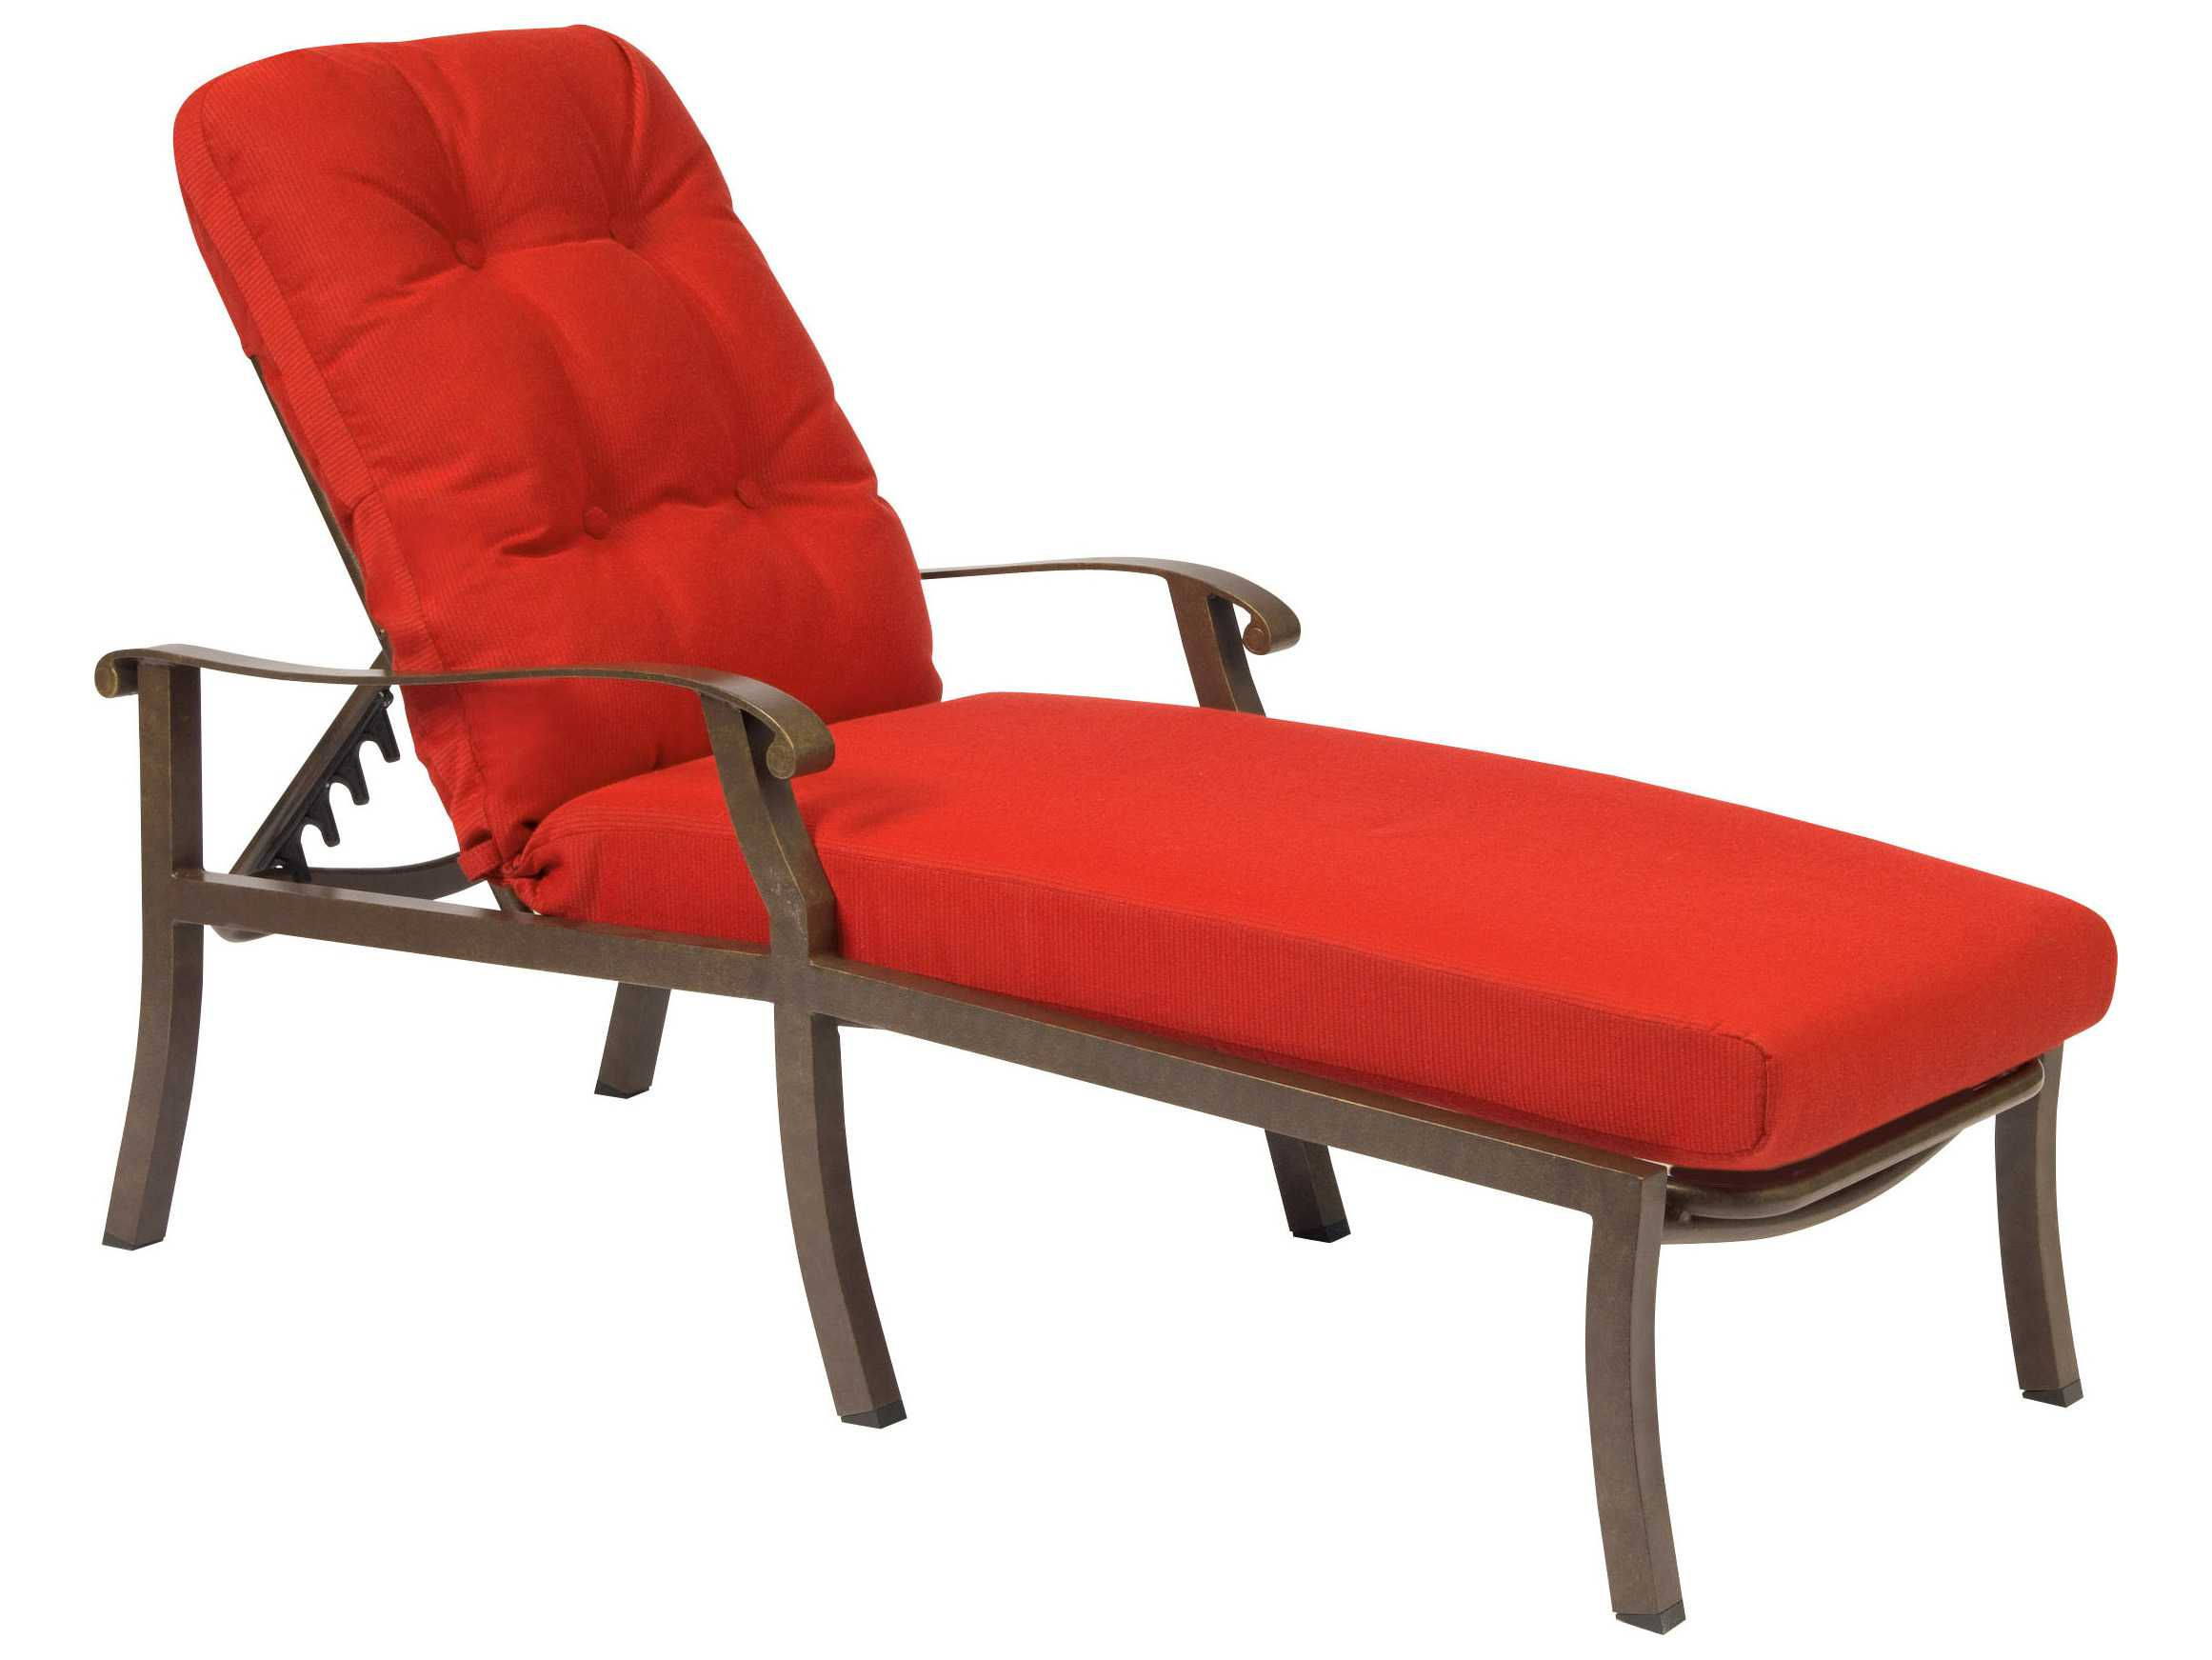 Woodard cortland cushion aluminum adjustable chaise lounge for Best chaise lounge cushions